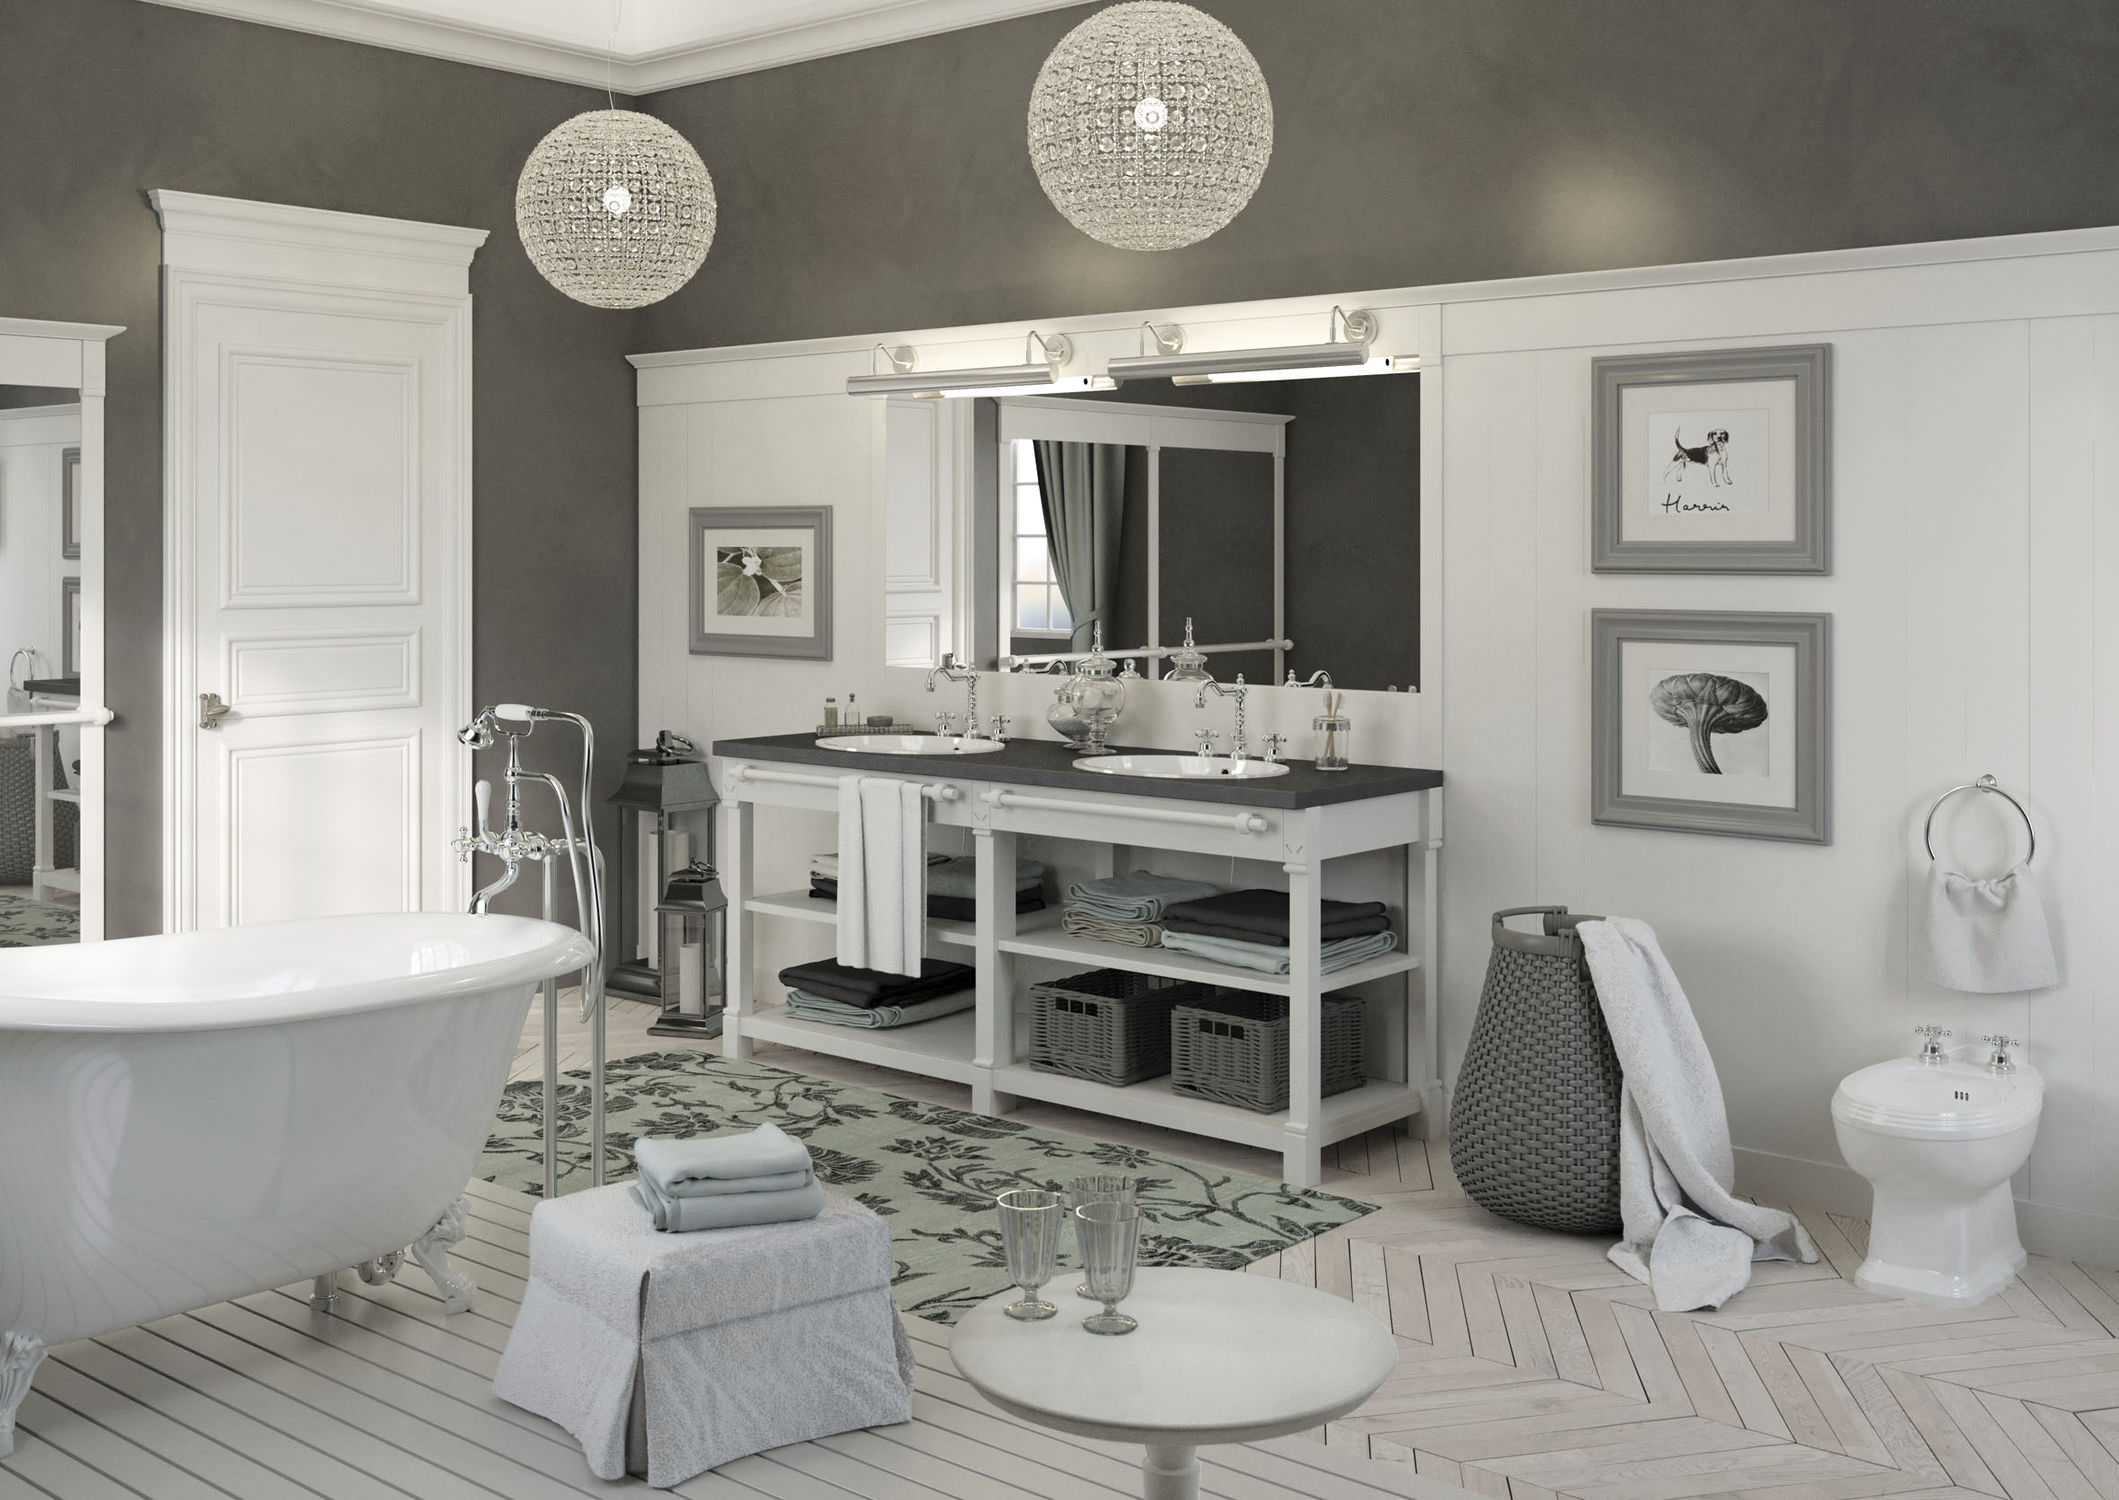 Mobile bagno stile provenzale. trendy good bagno country jpg with